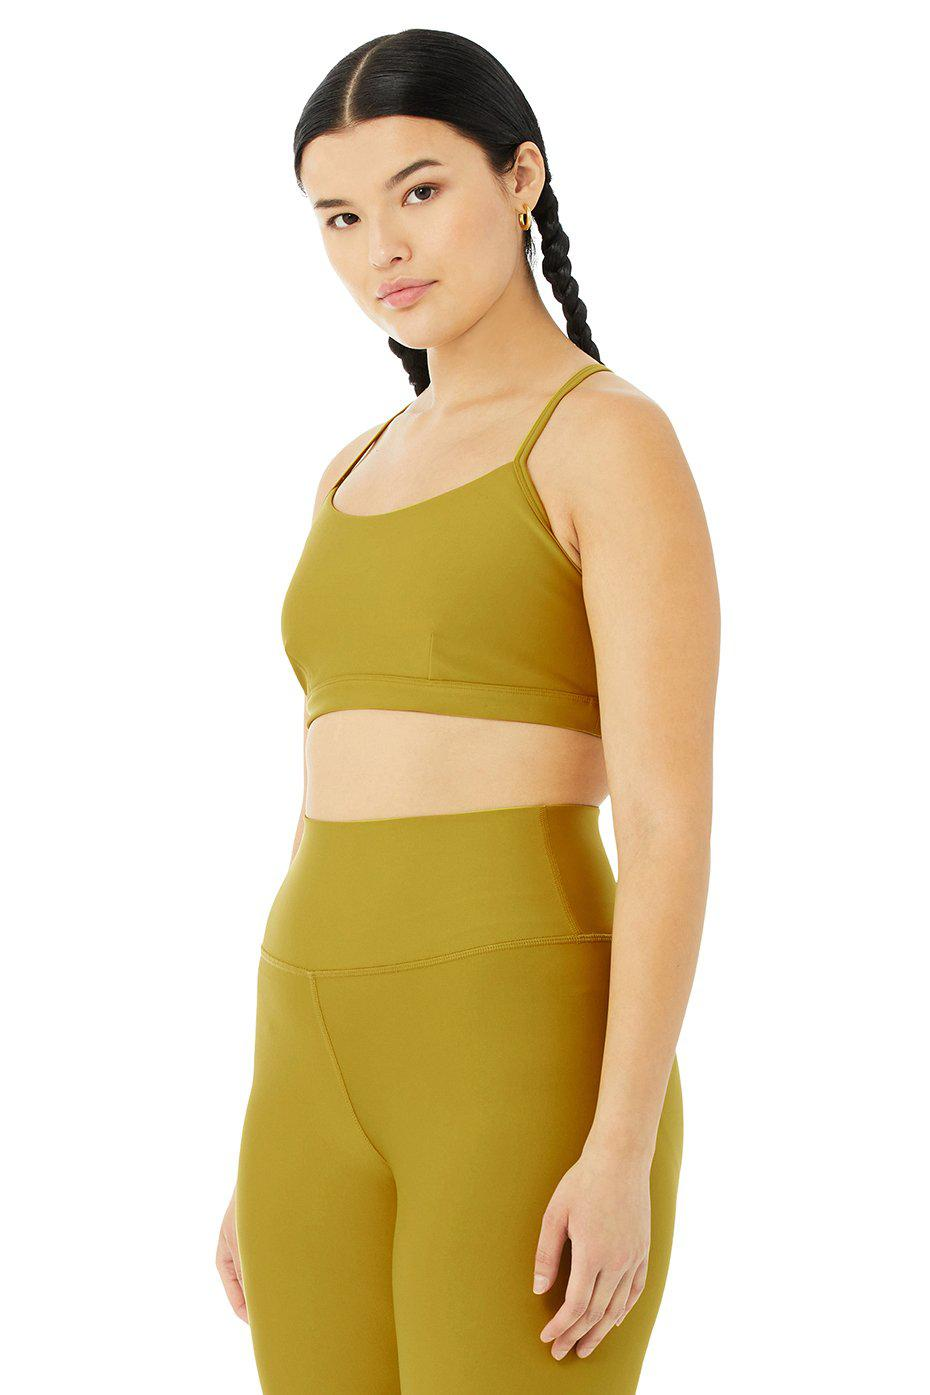 Airlift Intrigue Bra - Chartreuse 9